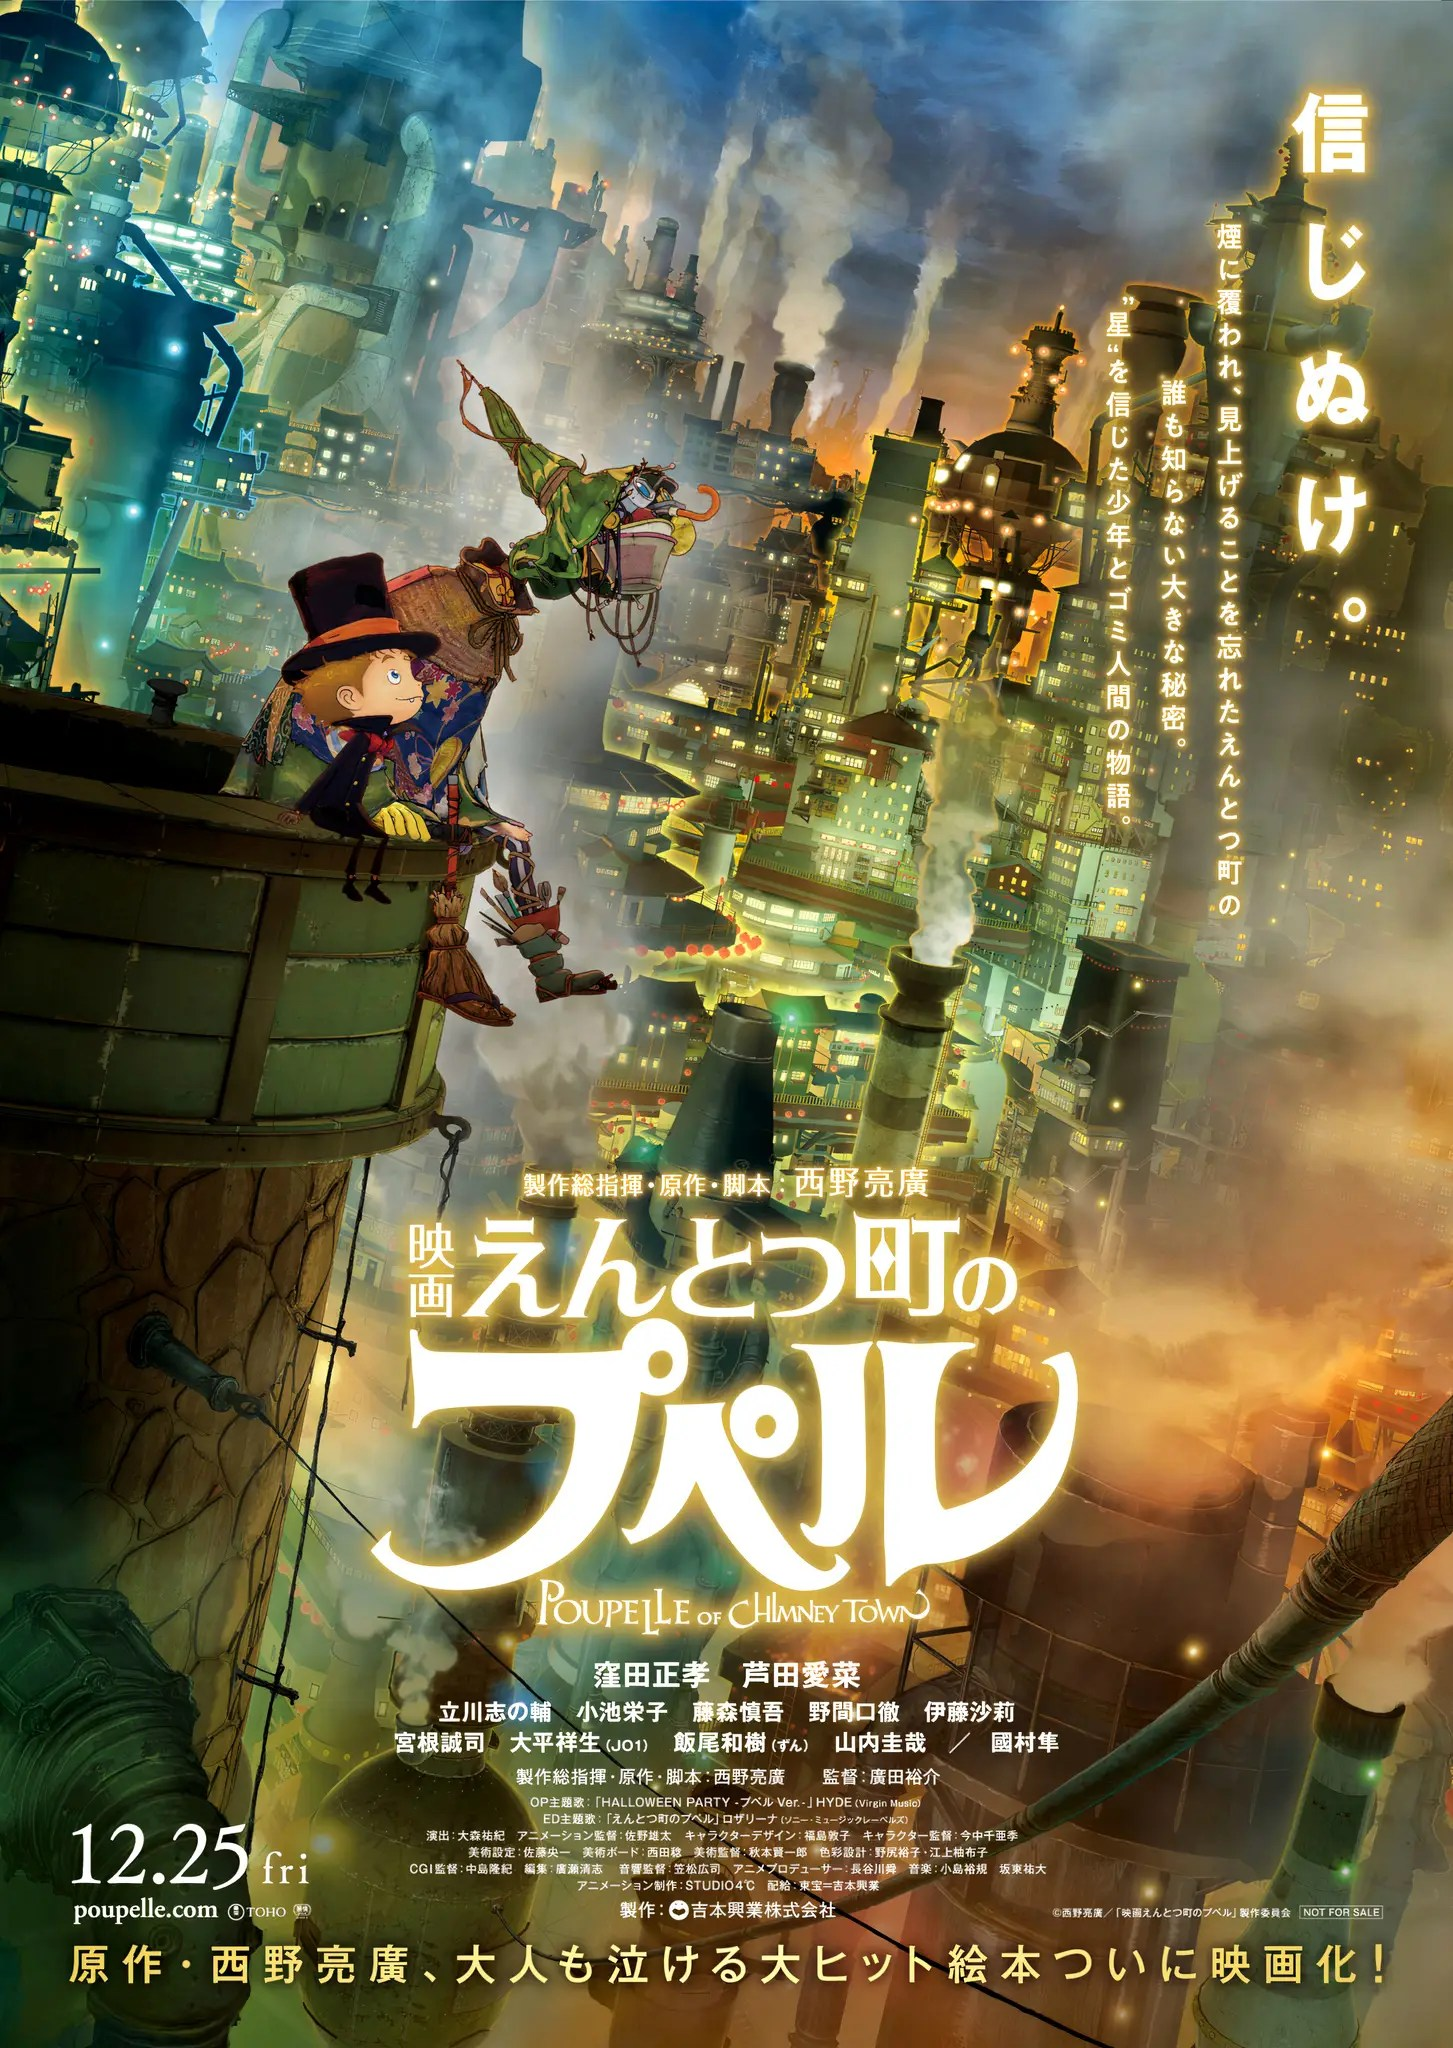 Annonce du film Poupelle of Chimney Town en Trailer